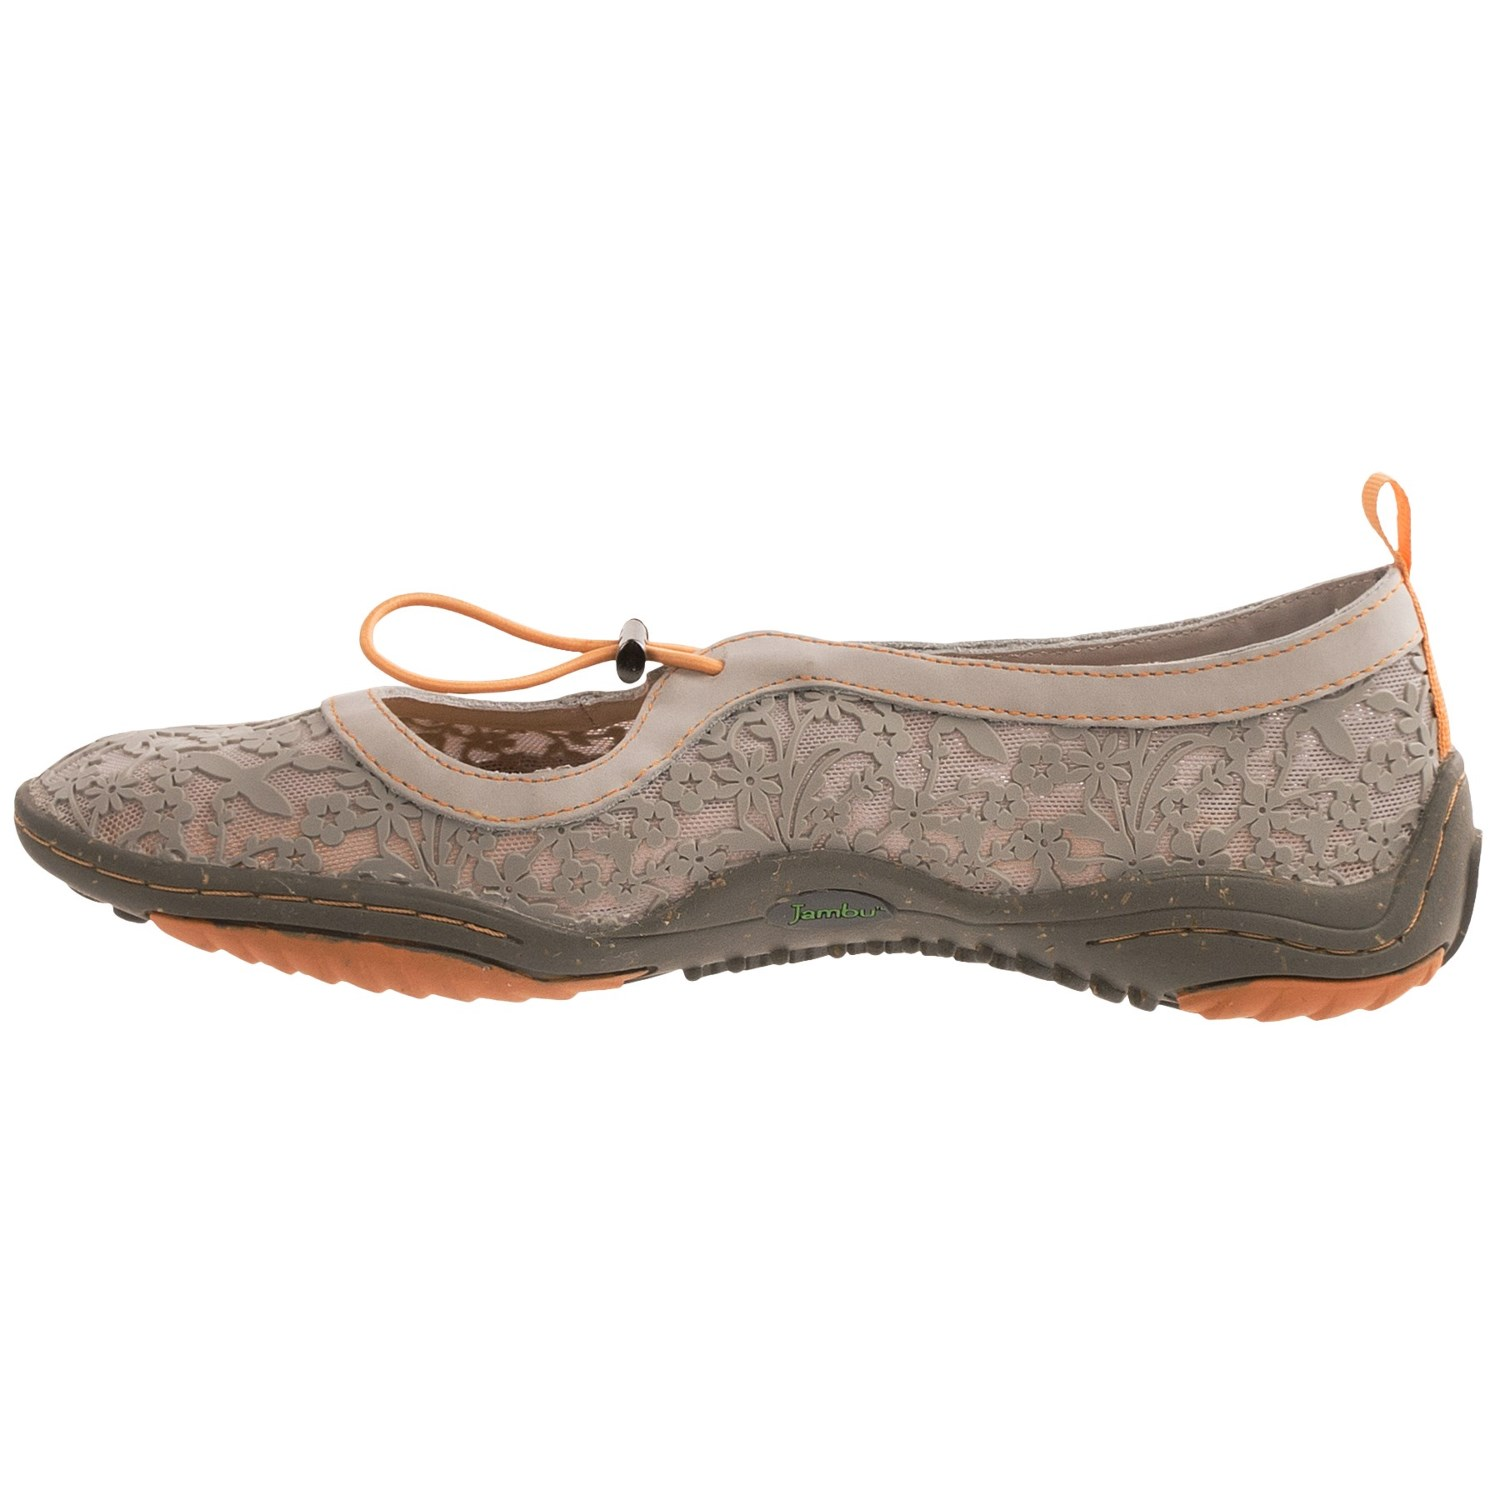 Jambu Yogi Barefoot Shoes For Women 9006w Save 59